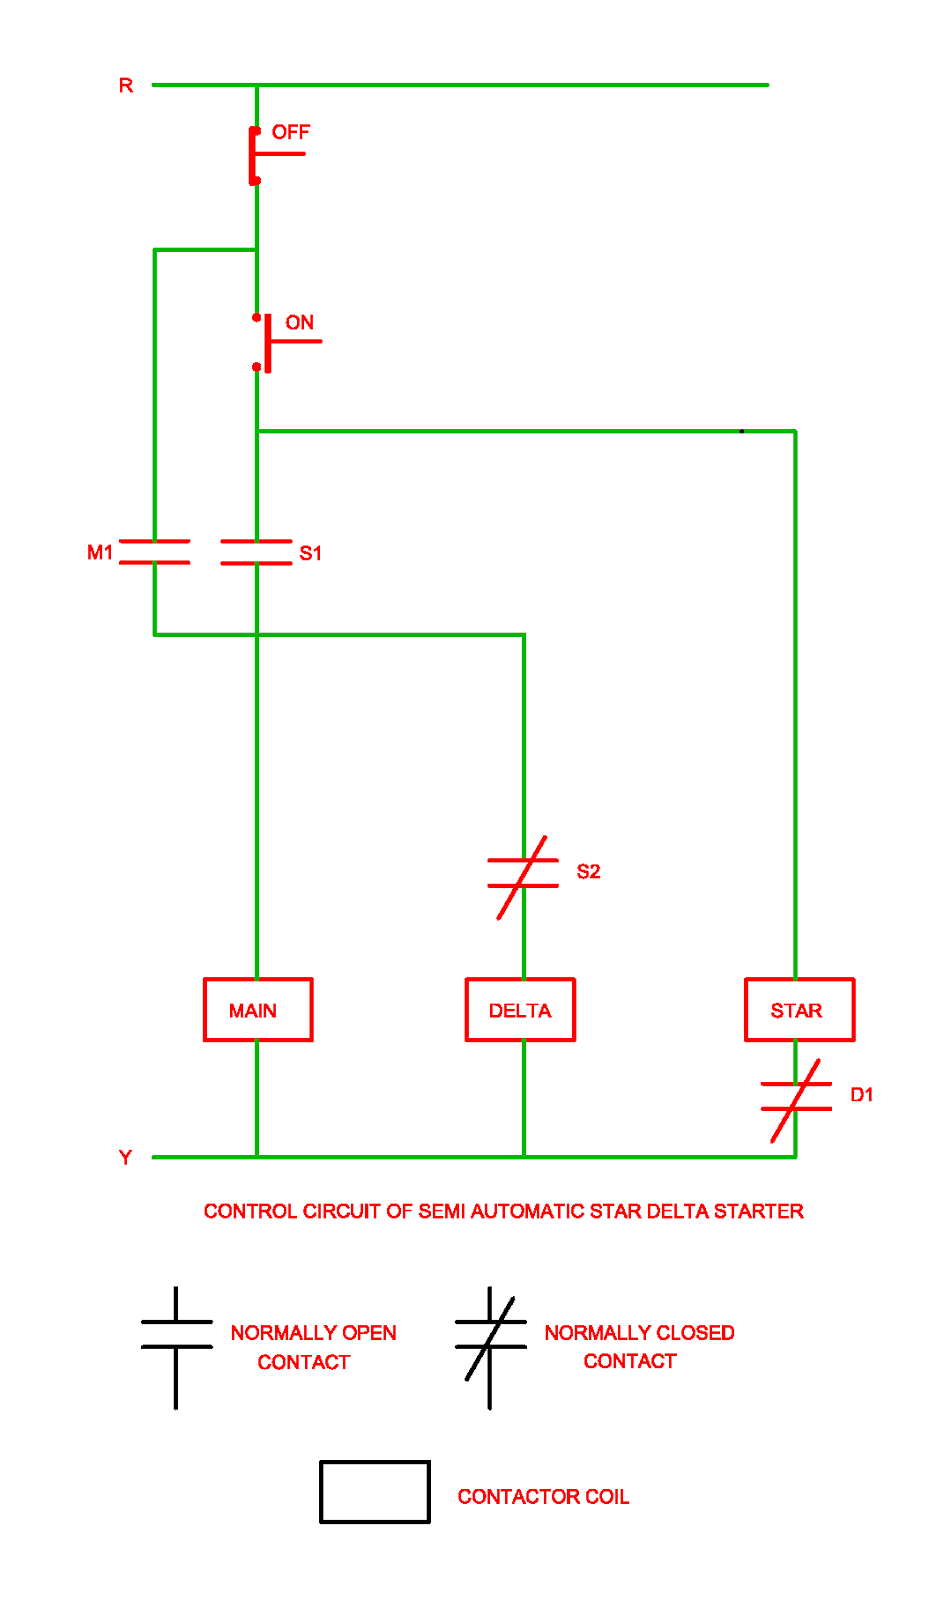 small resolution of control circuit of semi automatic star delta starter pdf